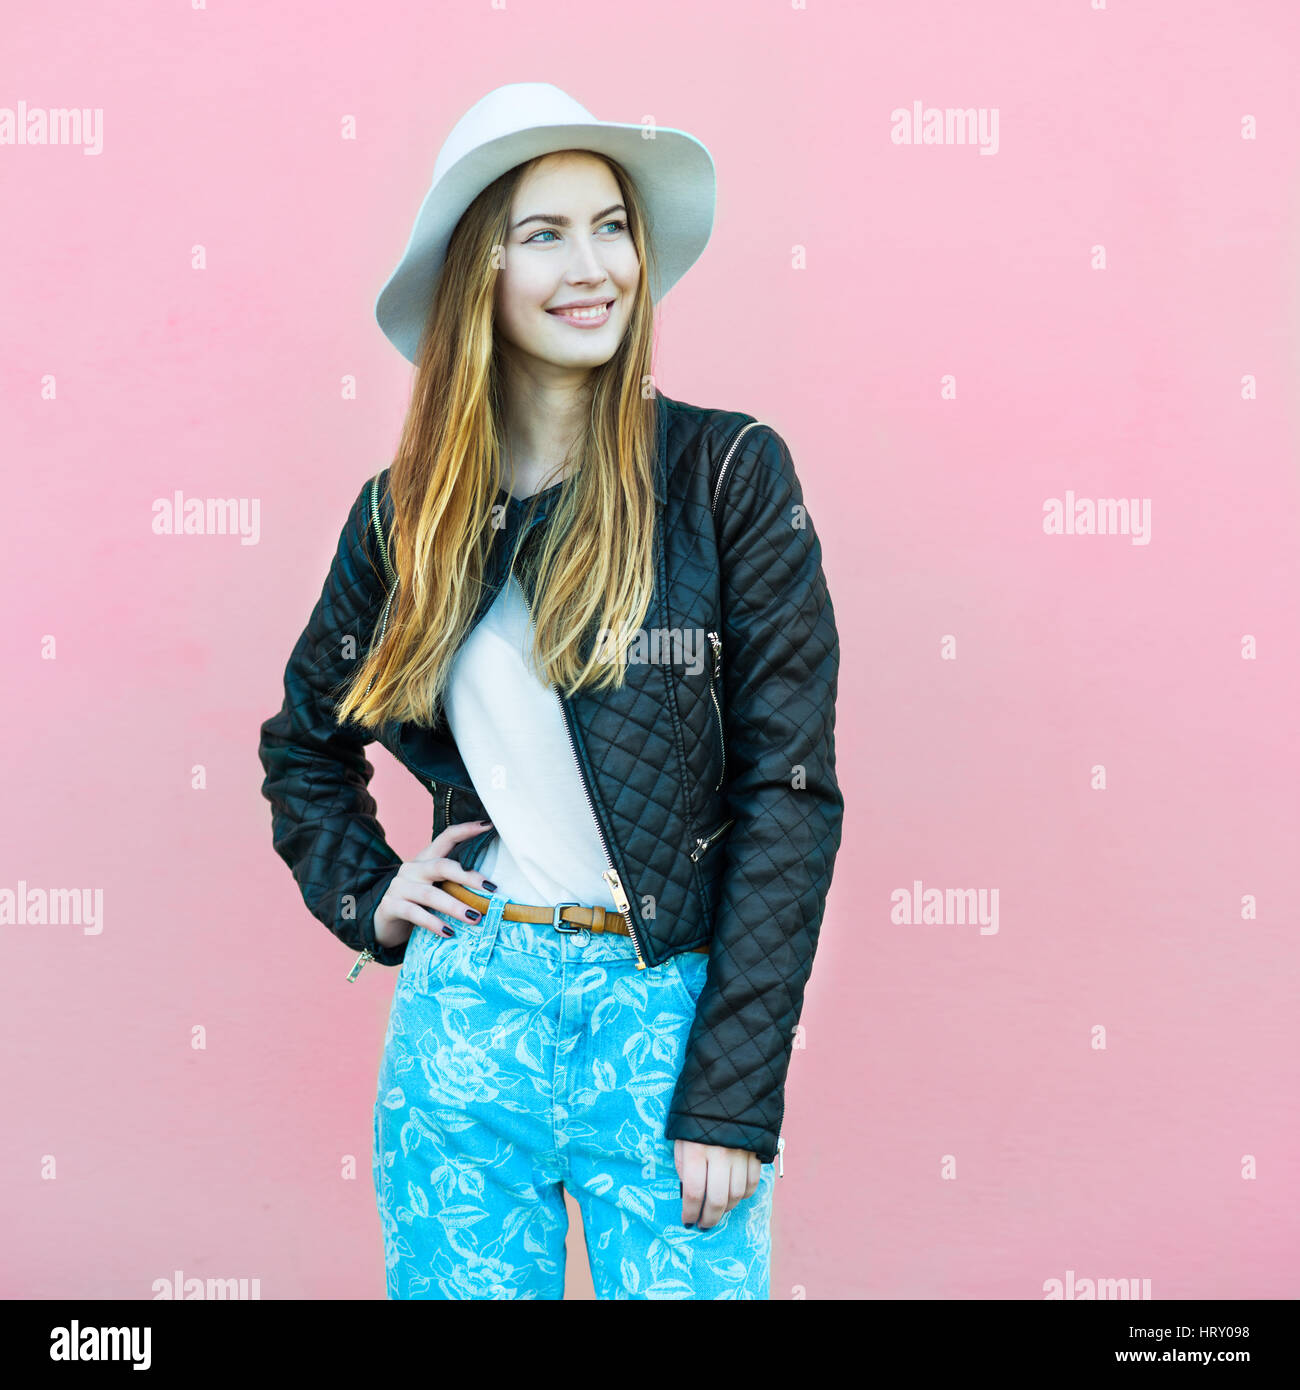 Young Happy Fashion Blogger Girl Posing Near The Wall